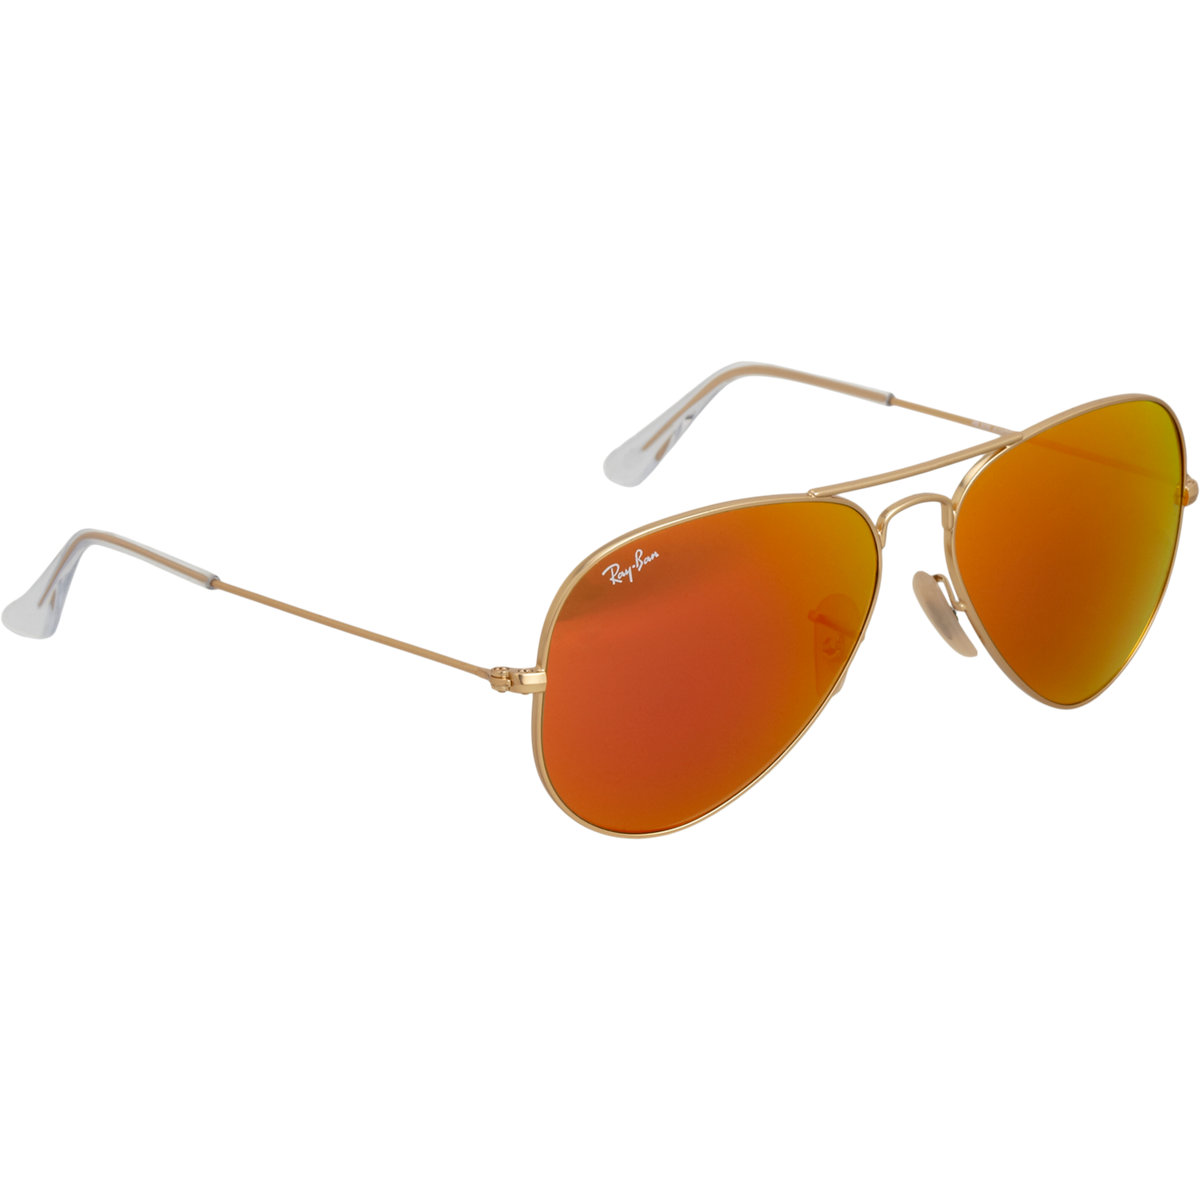 Ray-Ban Gold Frame Crystal Mirror Lens Aviator Sunglasses in ...